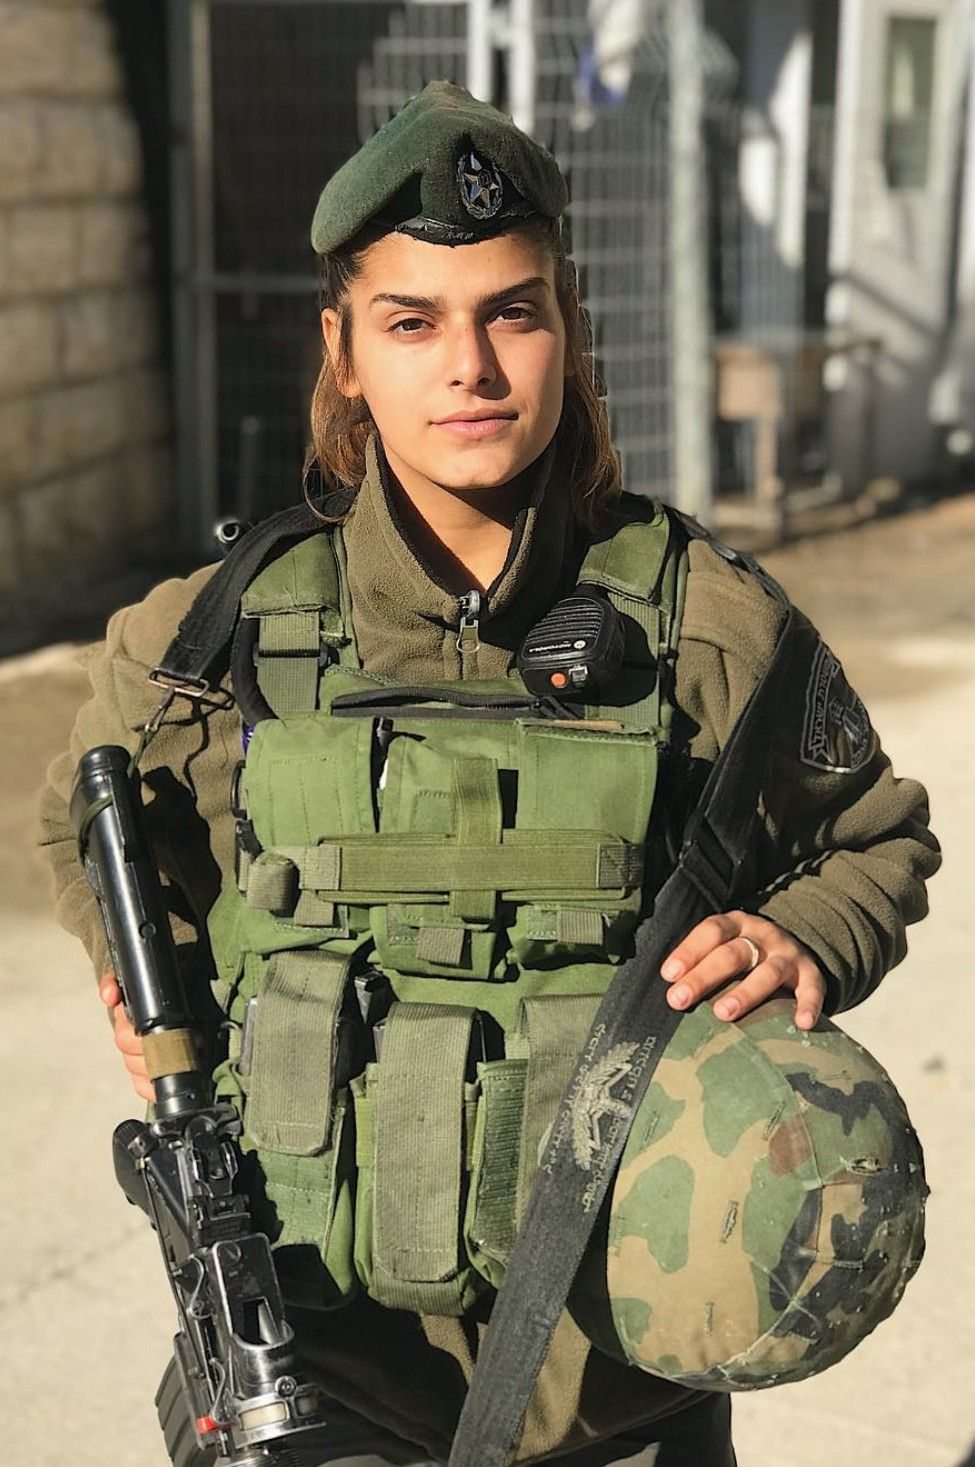 Female soldier pics for scammers. www.eremmel.com